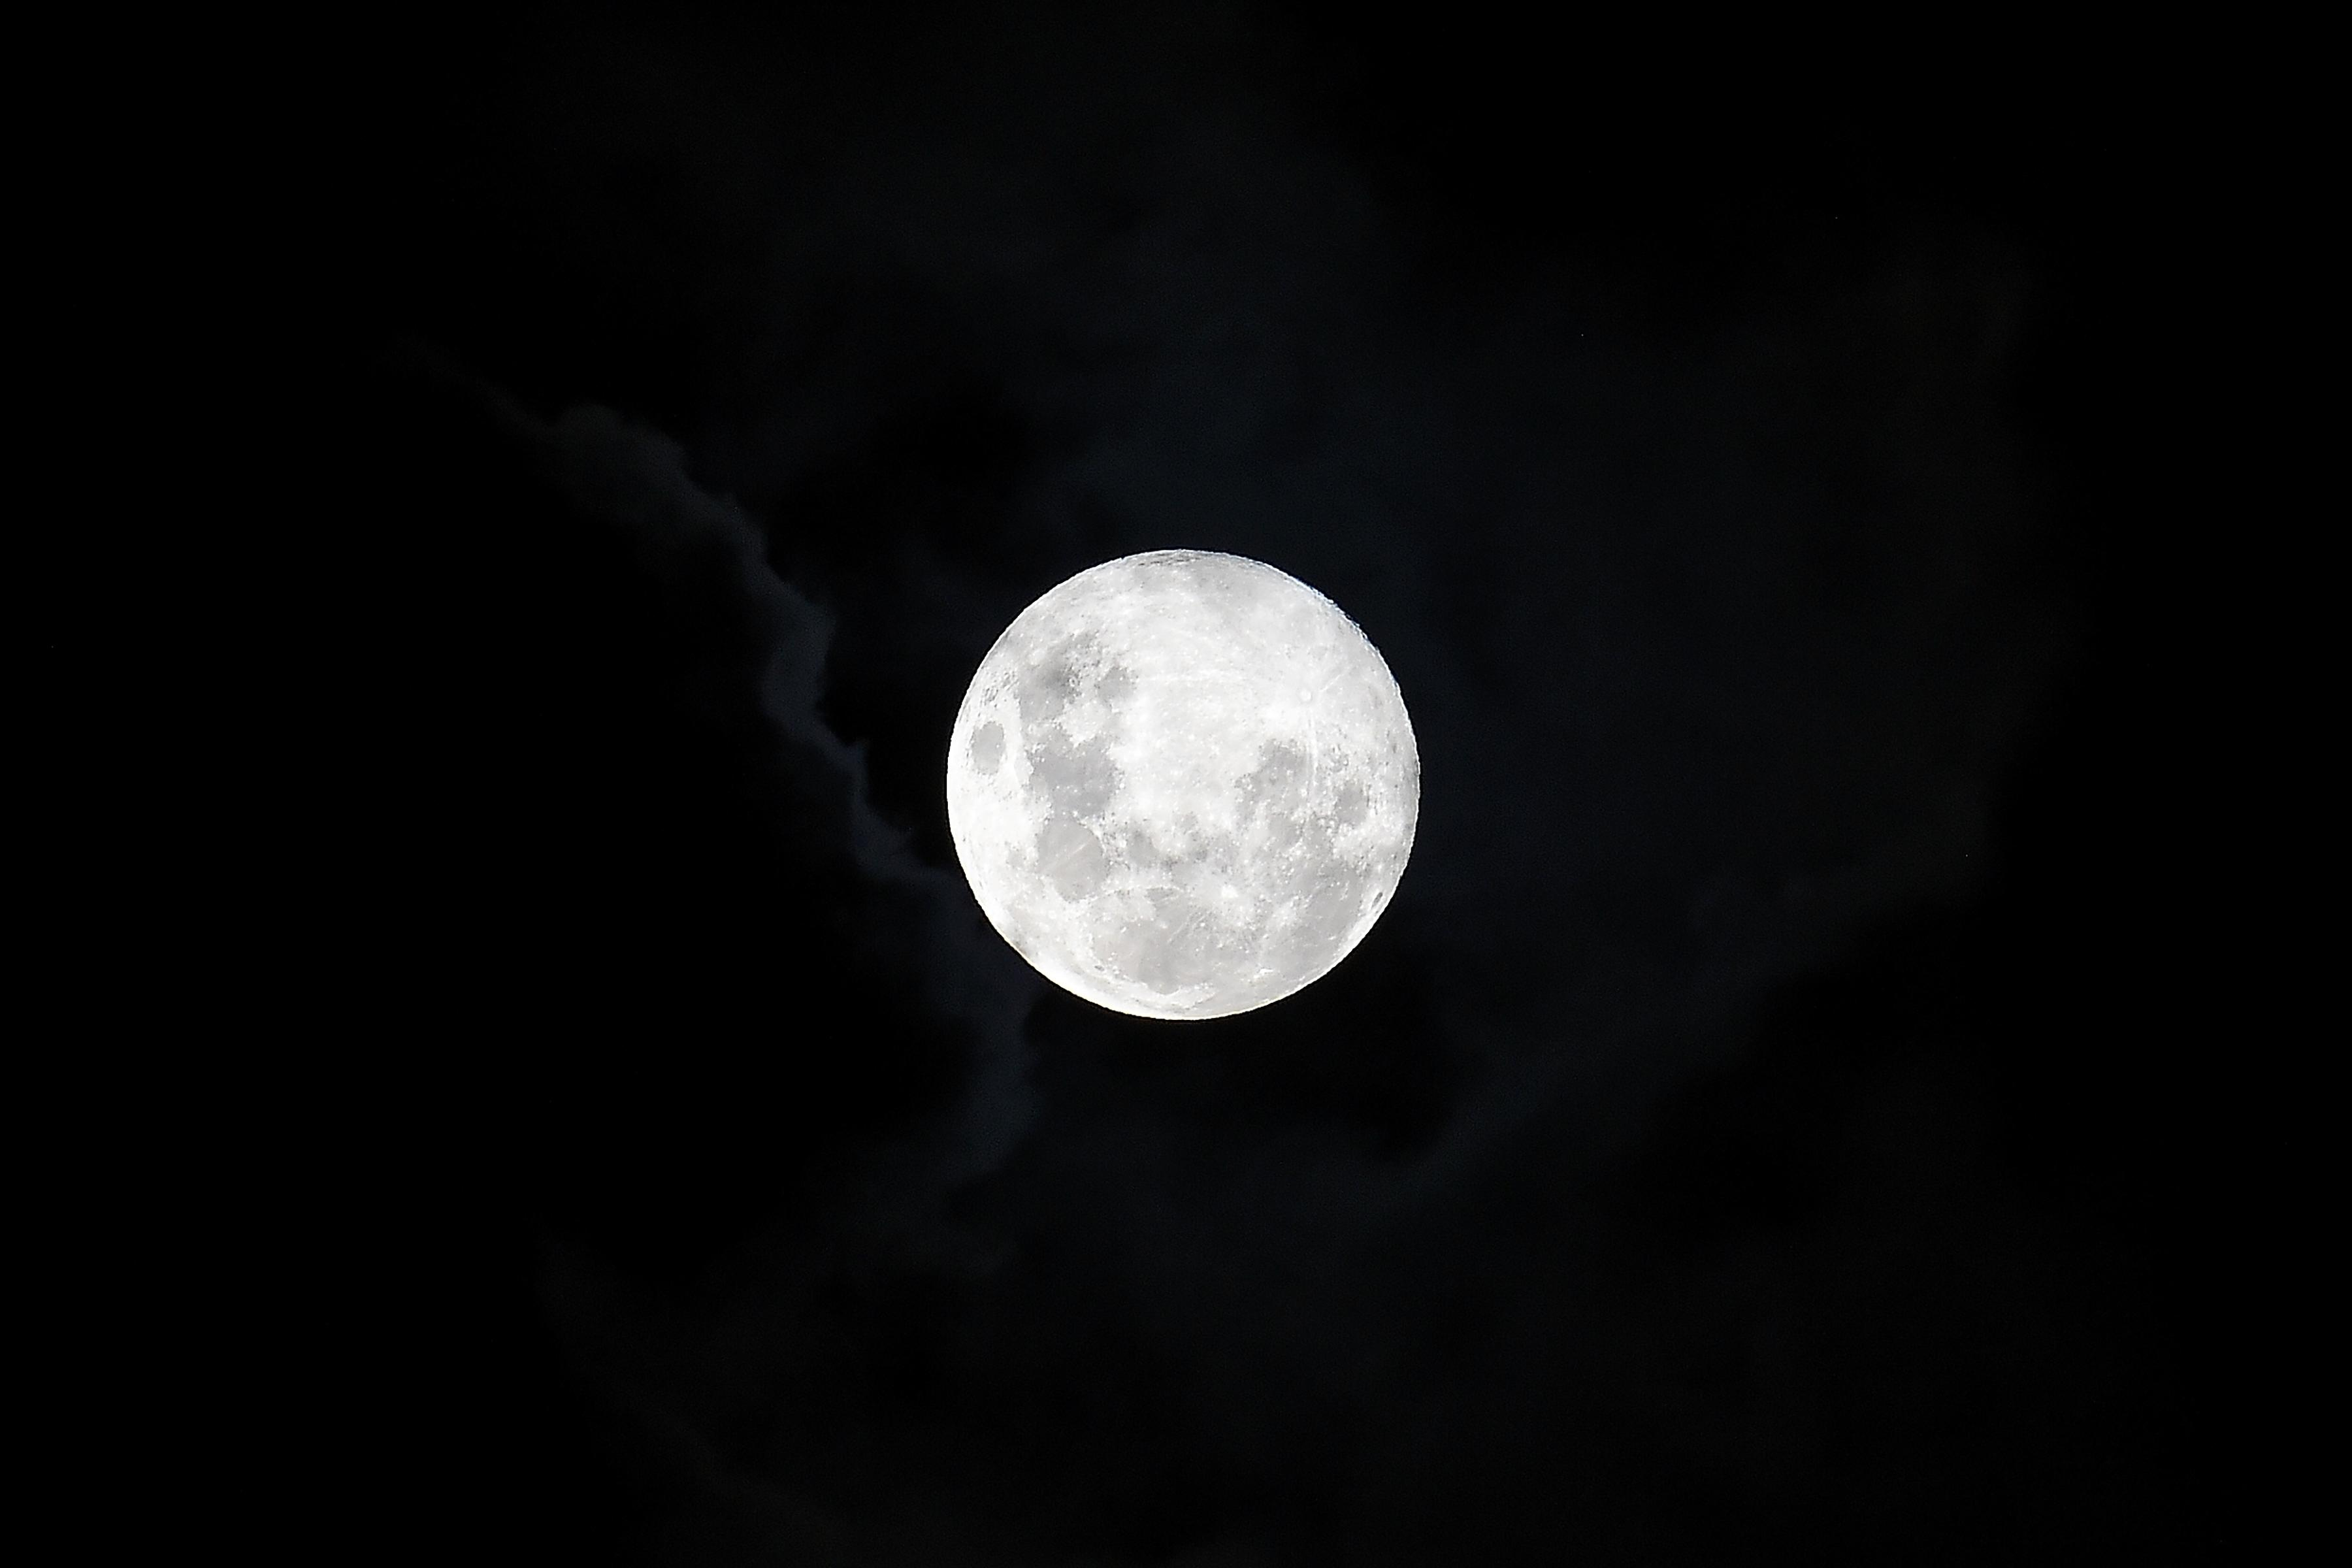 On Sunday There Will Be A Pink Moon Hanging Over The Usa Uu Term Is Used To Refer Full Of April But Do Not Wait Look Up